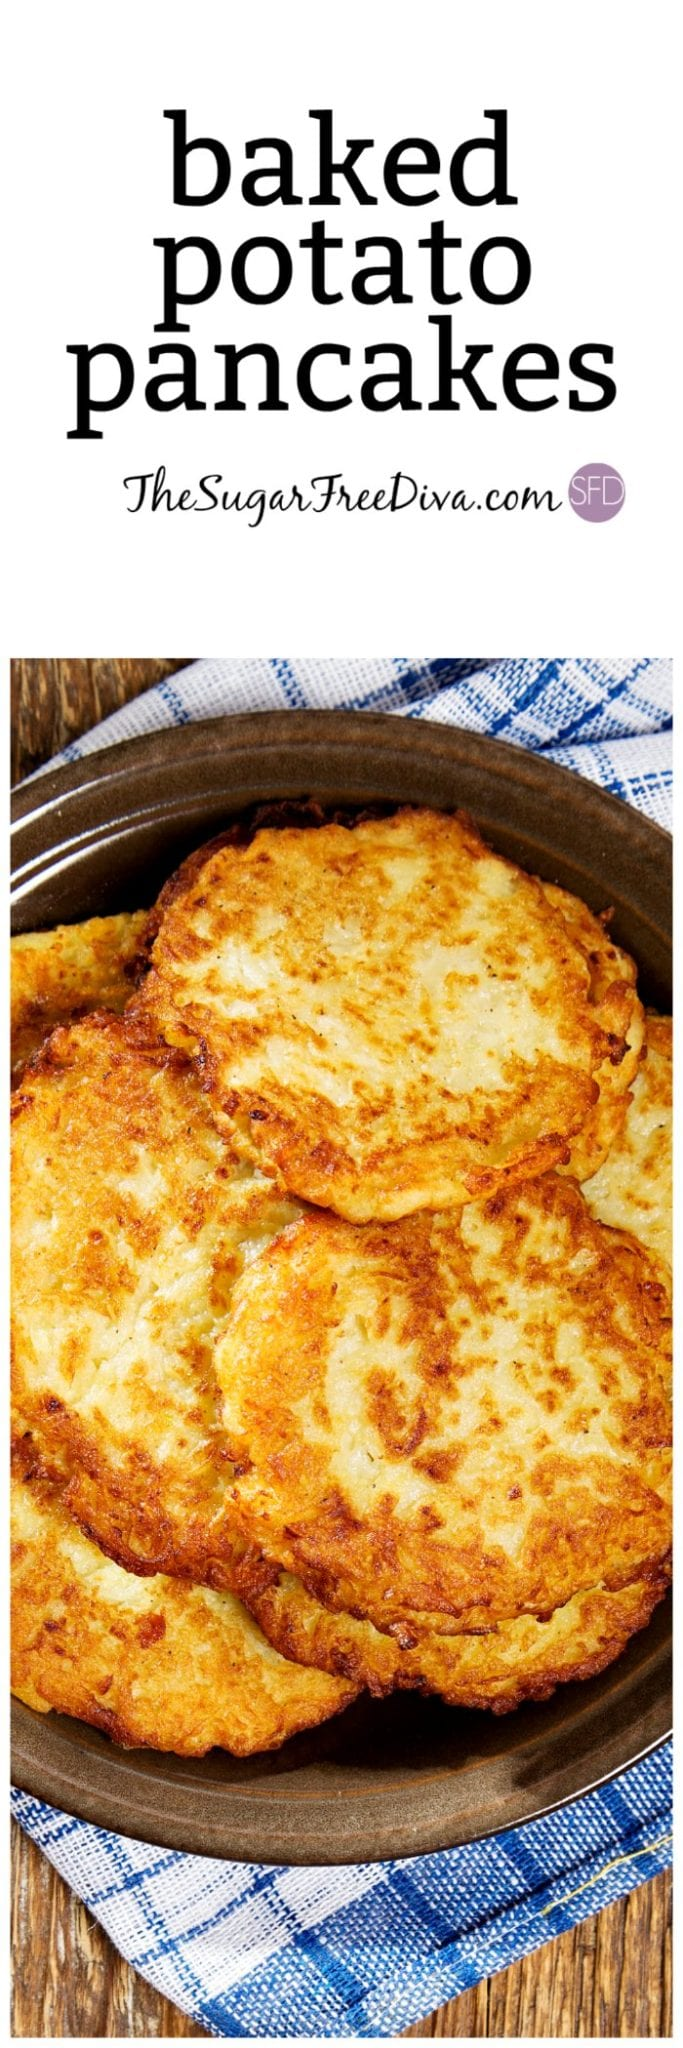 The recipe for how to make baked potato pancakes how to make baked potato pancakes ccuart Choice Image